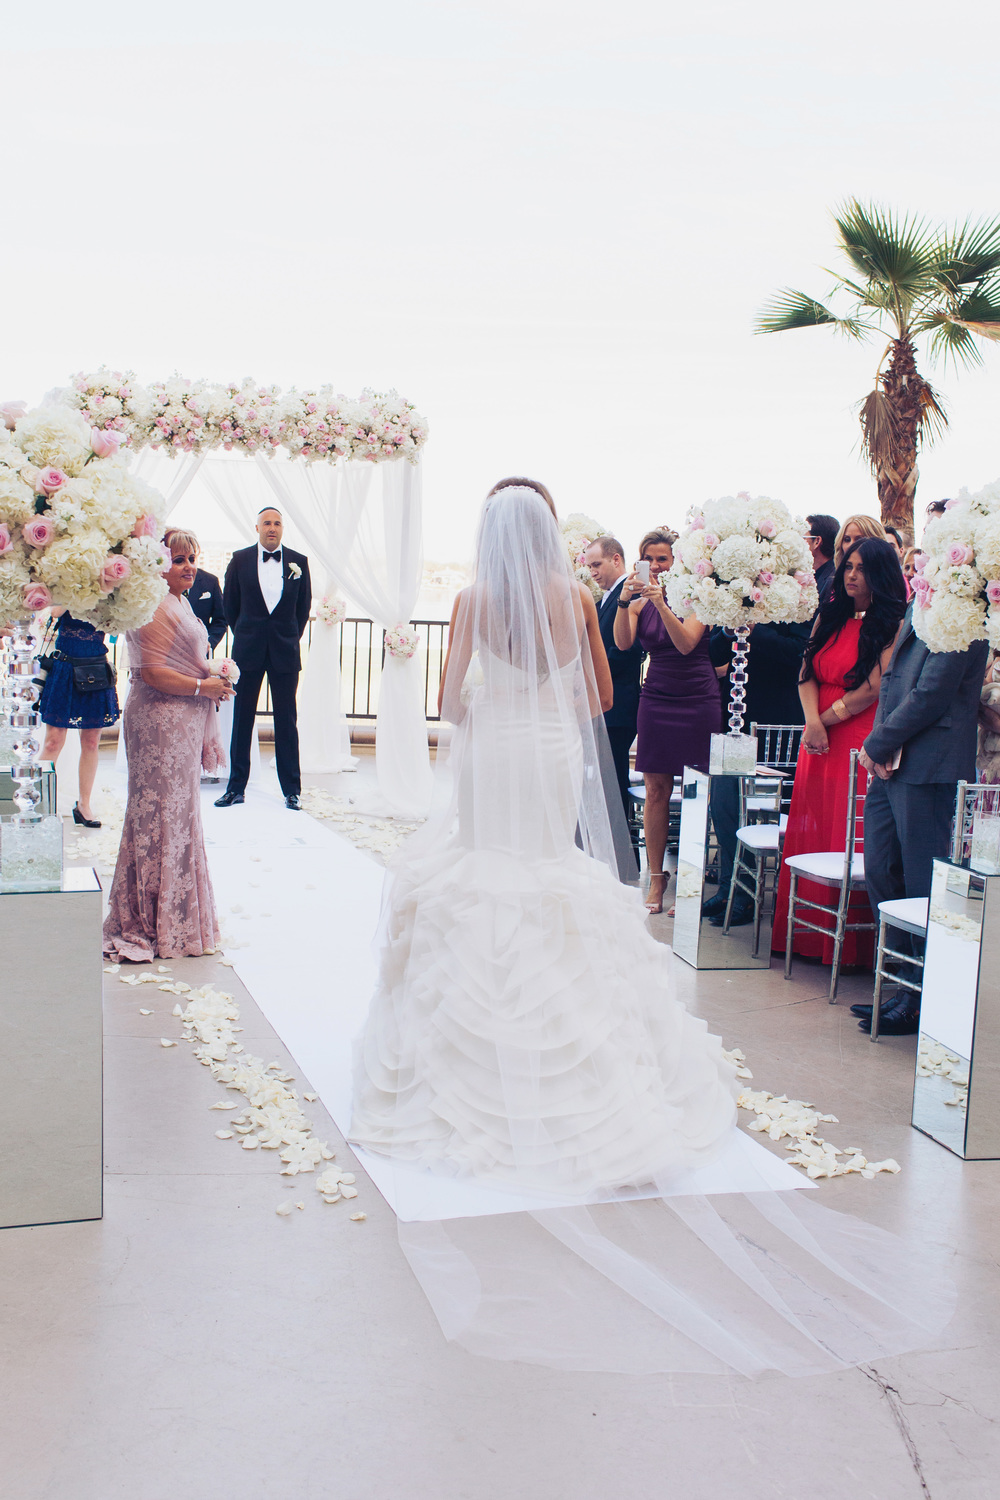 The bride walked half way down the aisle on her own before meeting her mother, who gave her away at the end.      Las Vegas Wedding Planner Andrea Eppolito  |  Wedding at Lake Las Vegas  | White and Blu  sh and Grey Wedding | Luxury Wedding Las Vegas